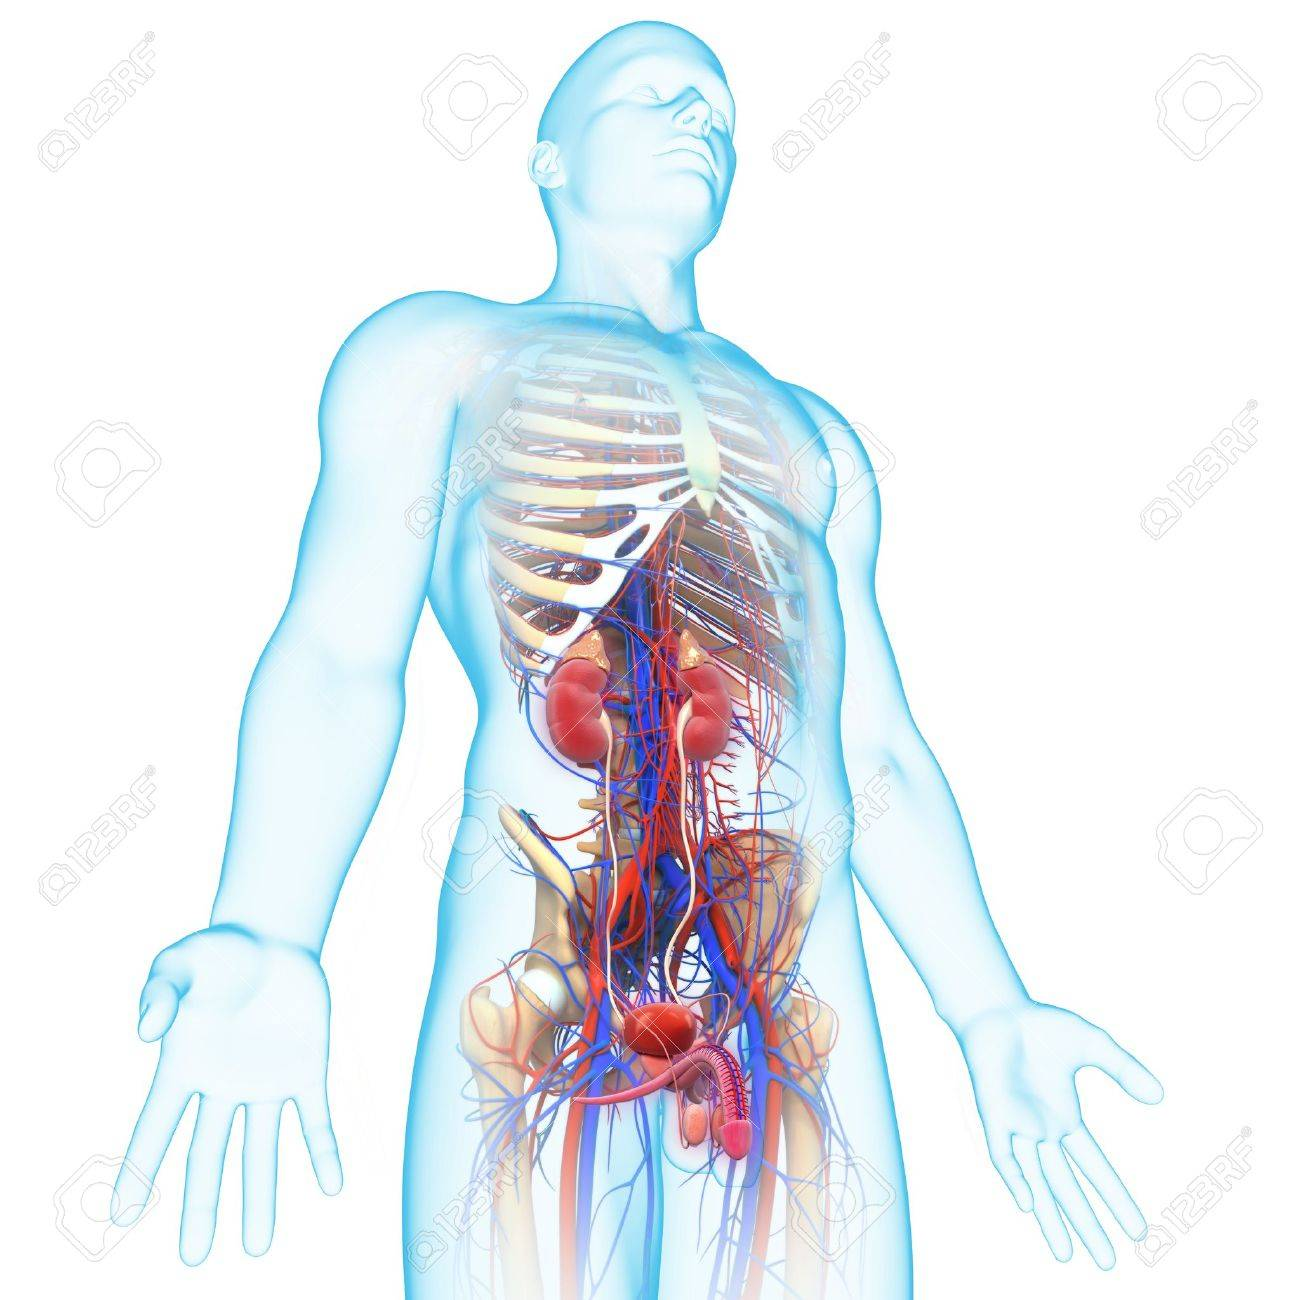 Side View Of Human Urinary System Stock Photo Picture And Royalty